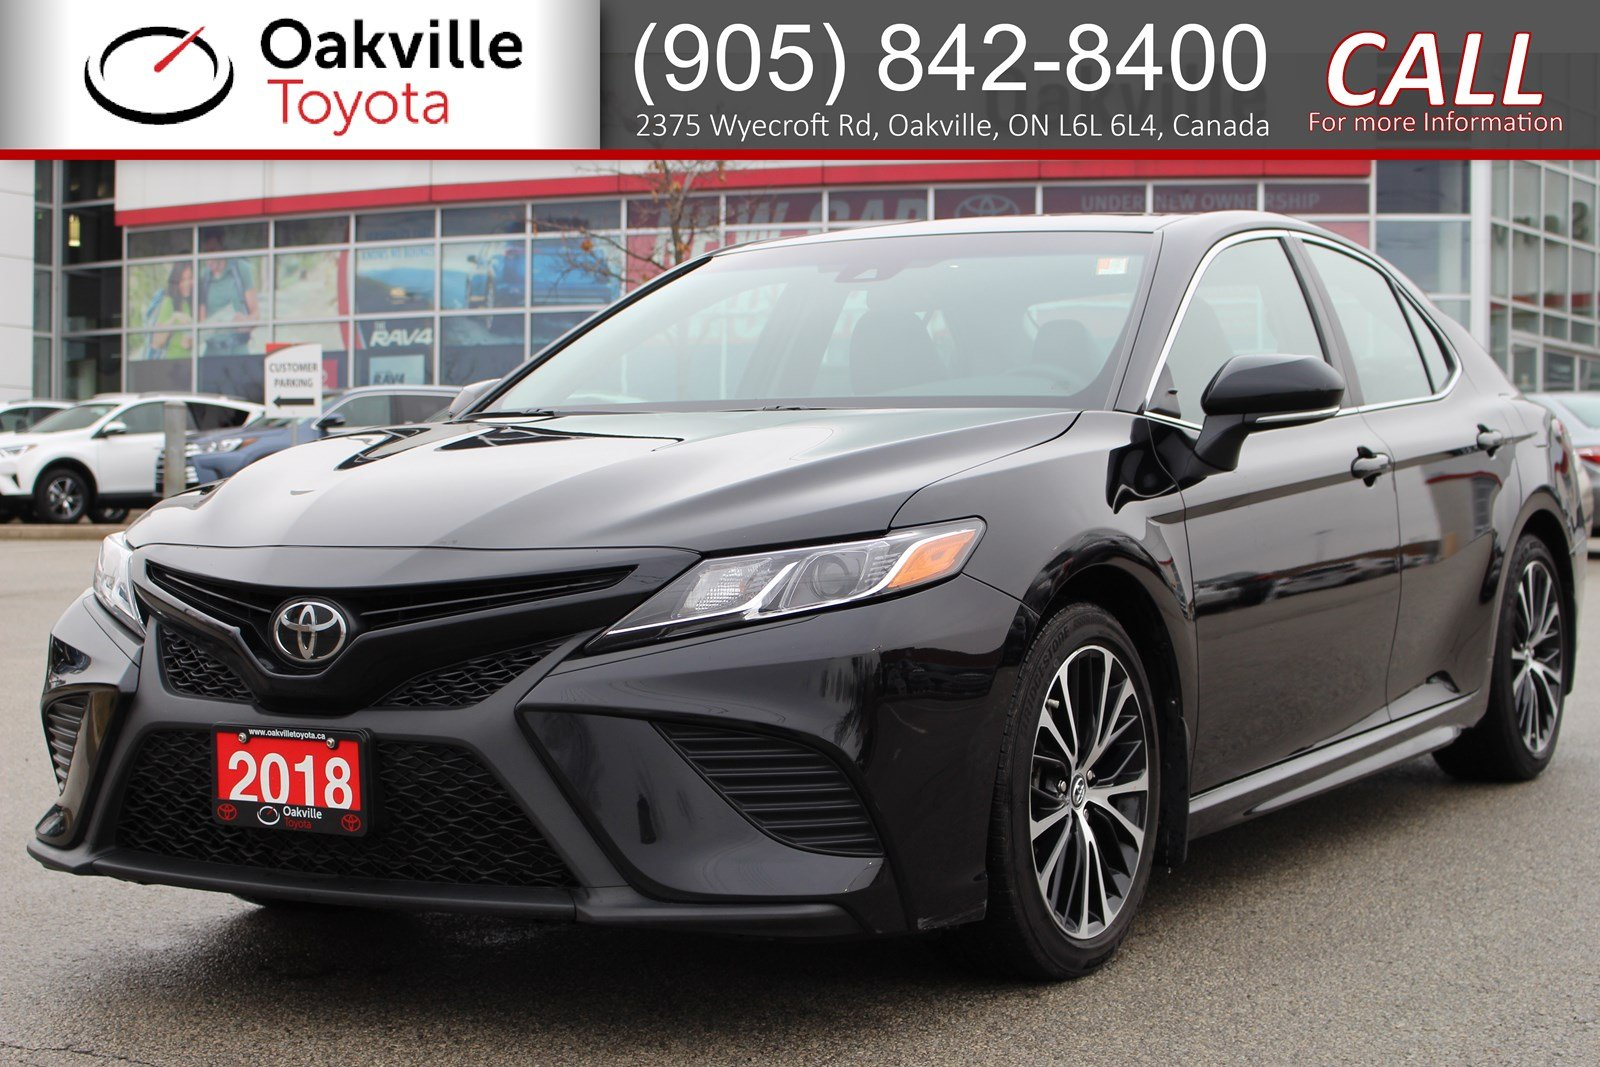 Certified Pre-Owned 2018 Toyota Camry SE Upgrade with Single Owner and Clean Carfax